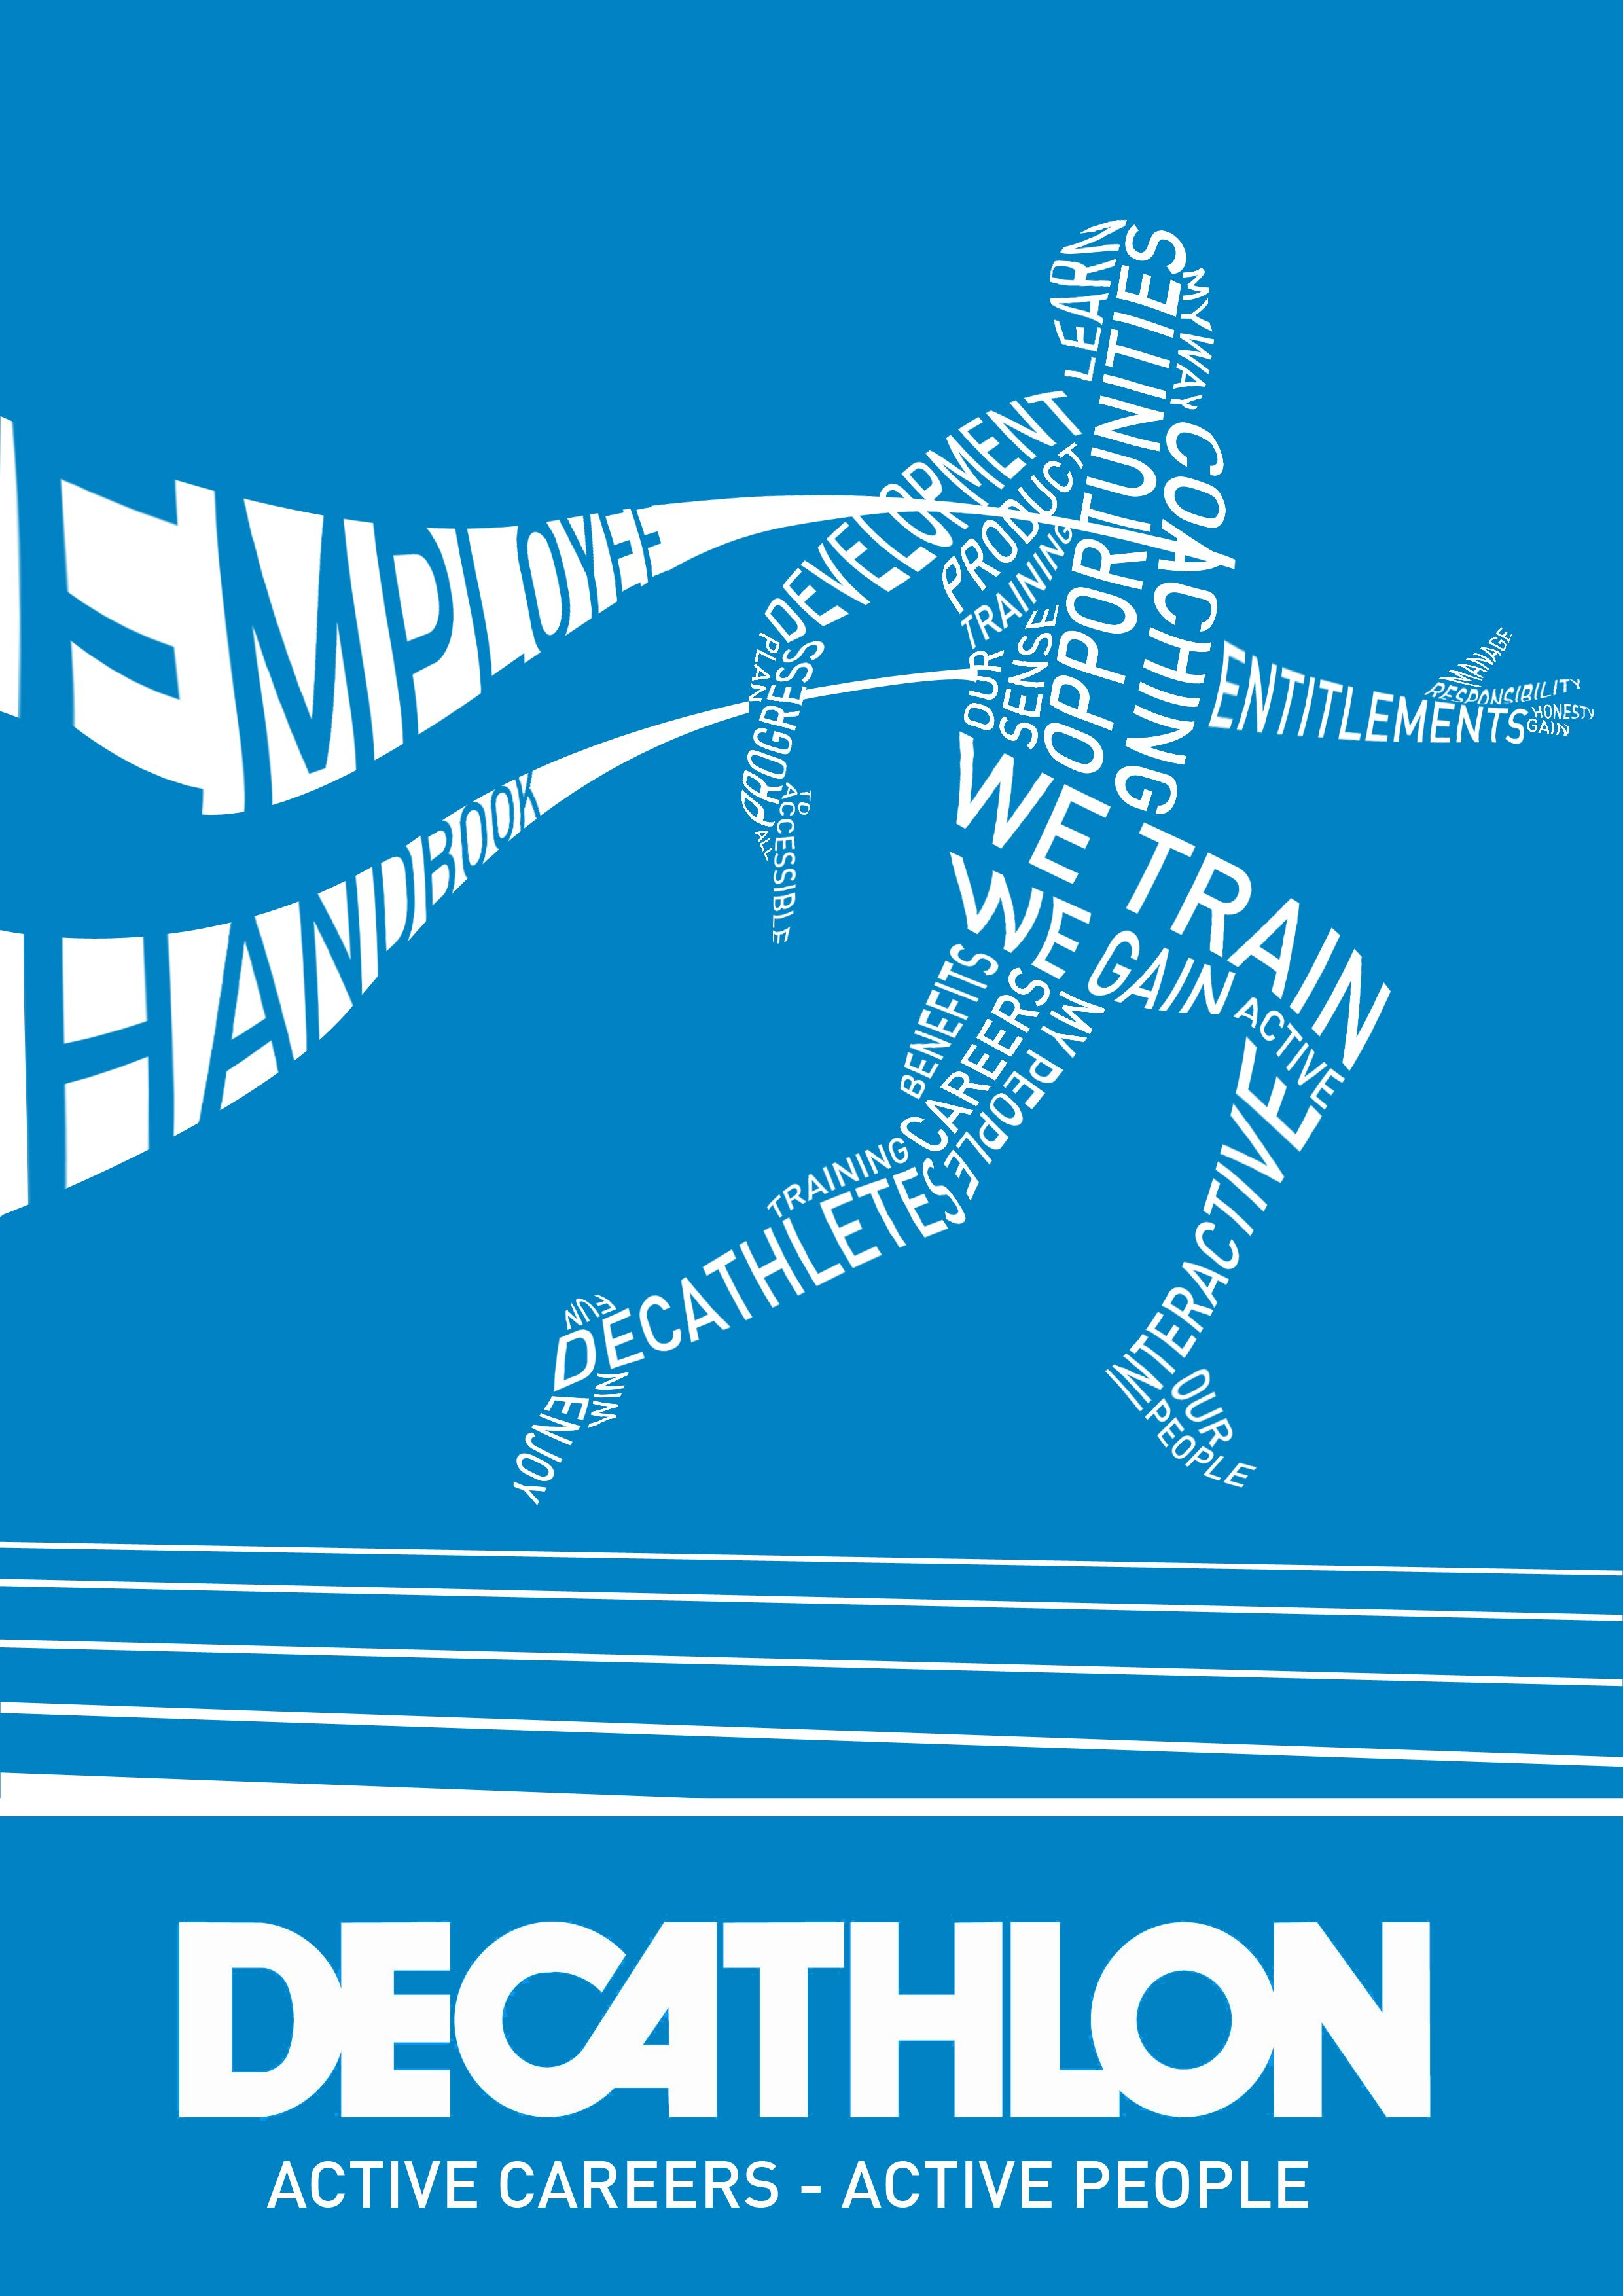 Decathlon Employee Handbook Poster Front Cover Of Publication The Runner Is Made Up Of Key Words From The Booklet With The Runner Coming Through First Over